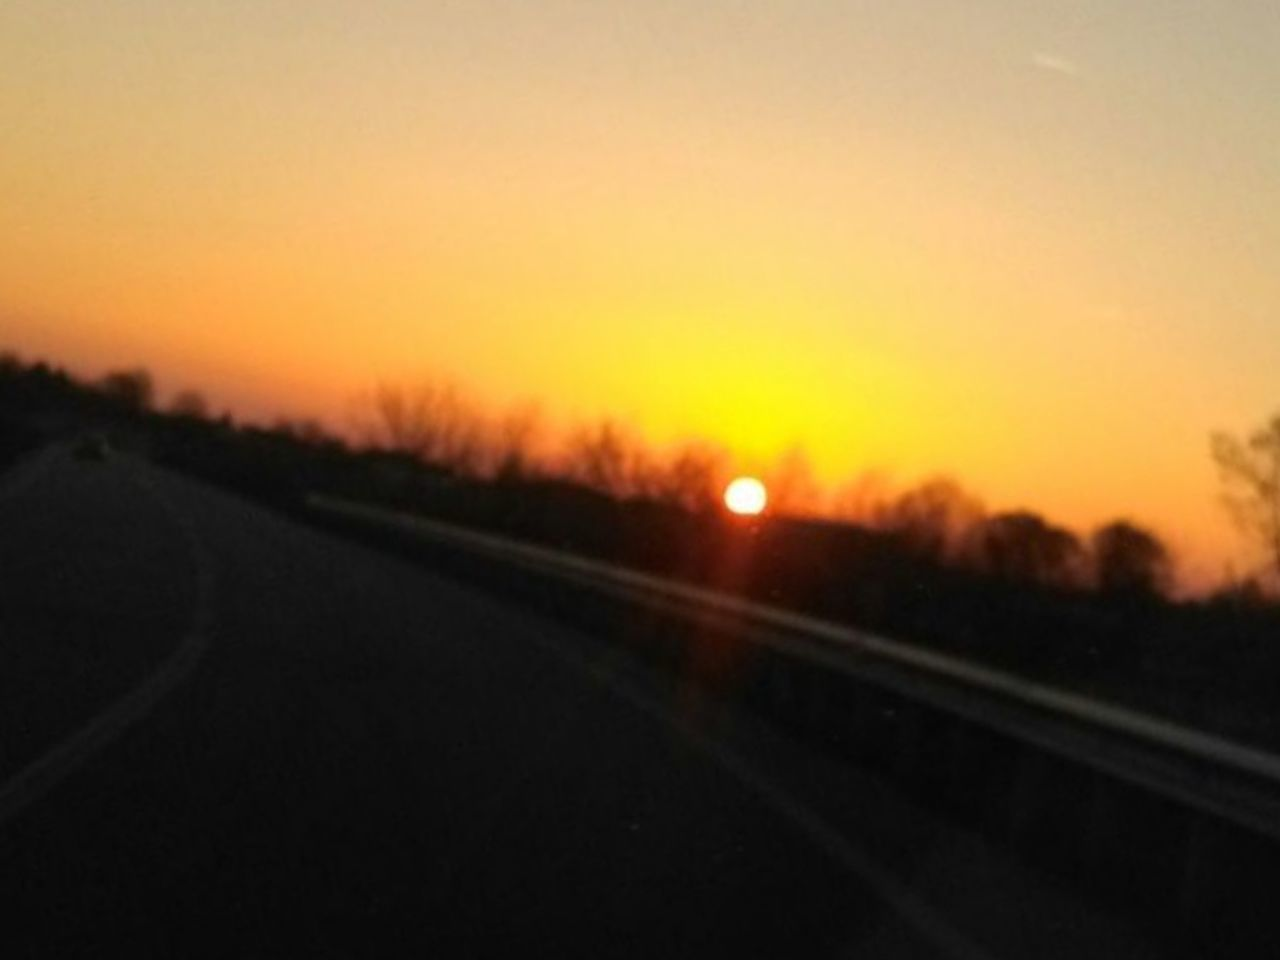 sunset, transportation, orange color, scenics, nature, road, sun, no people, beauty in nature, landscape, outdoors, tranquil scene, sky, railroad track, journey, silhouette, tranquility, day